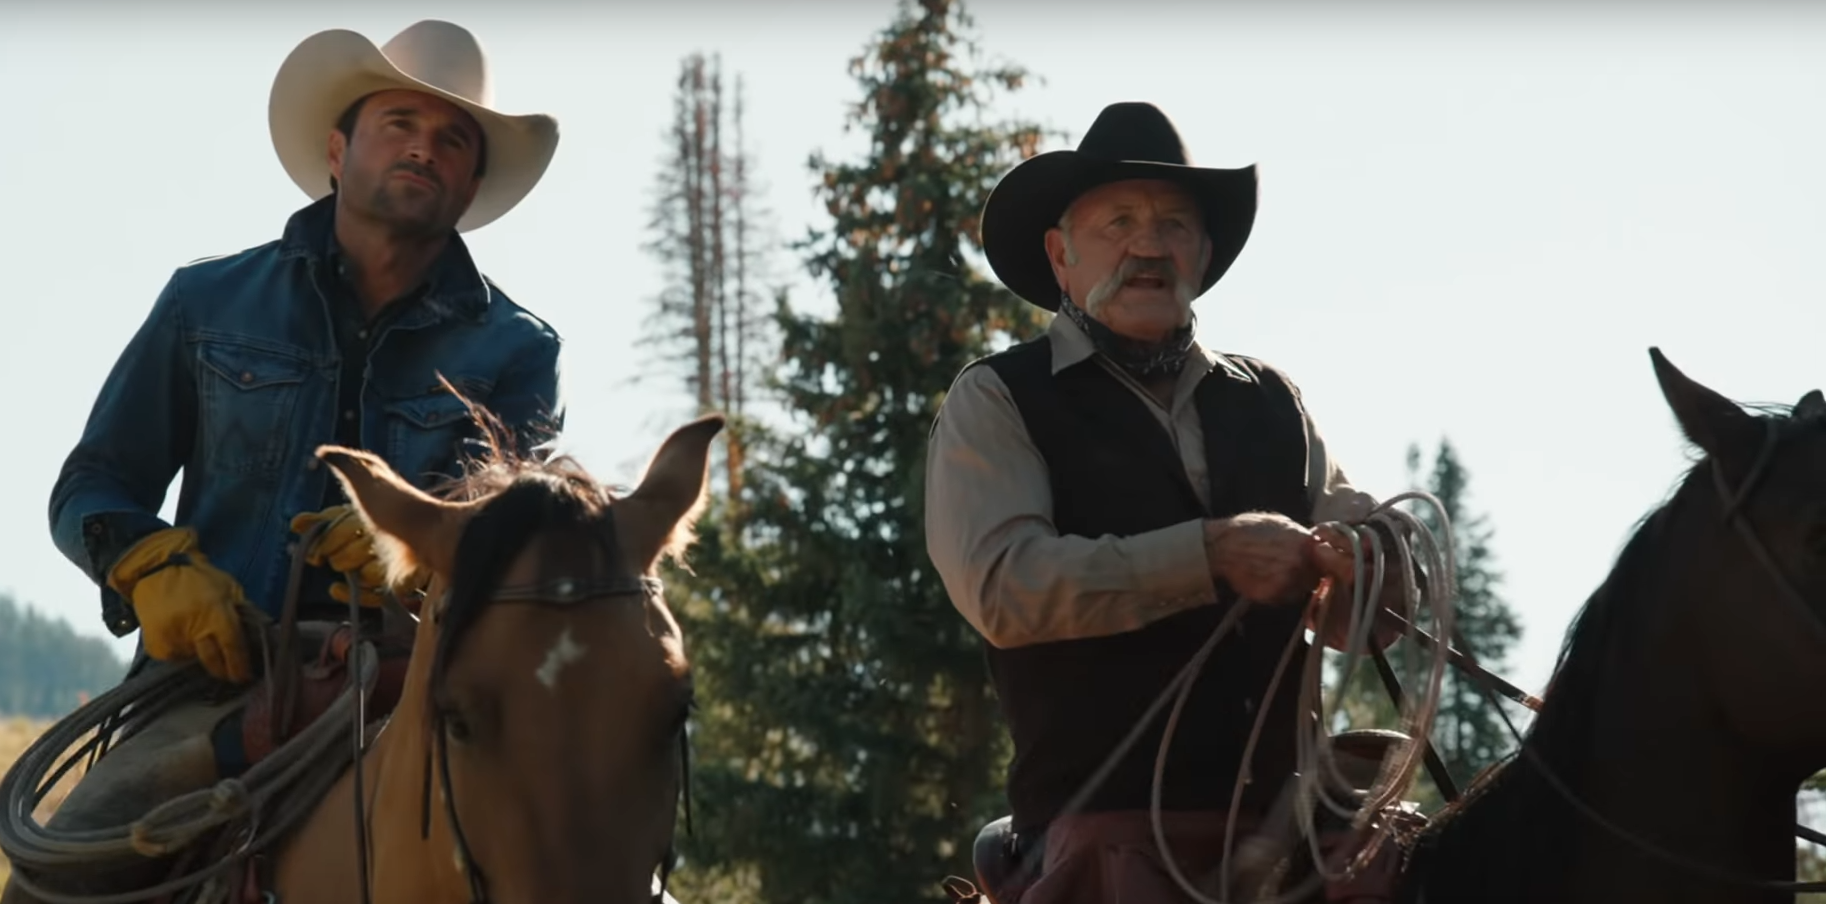 'Yellowstone' Season 3 Trailer: Kevin Costner Series Promises to Raise the Stakes